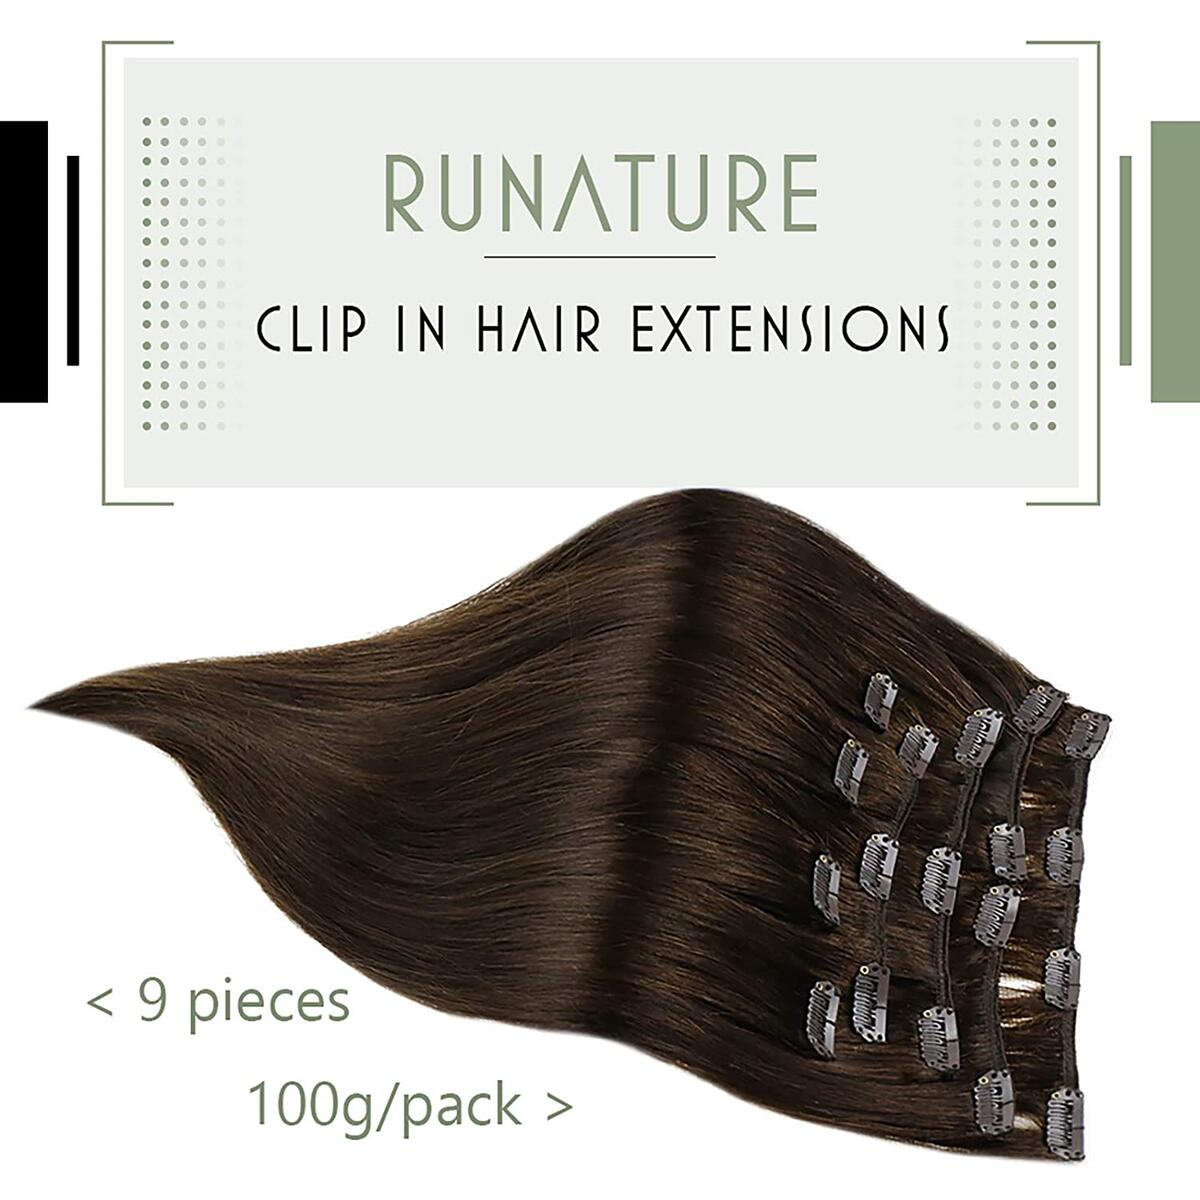 RUNATURE Clip in Human Hair Extensions 16 Inch Color 2 Darkest Brown 100g 9pcs Natural Hair Double Weft Clip in Extensions Real Hair Extension